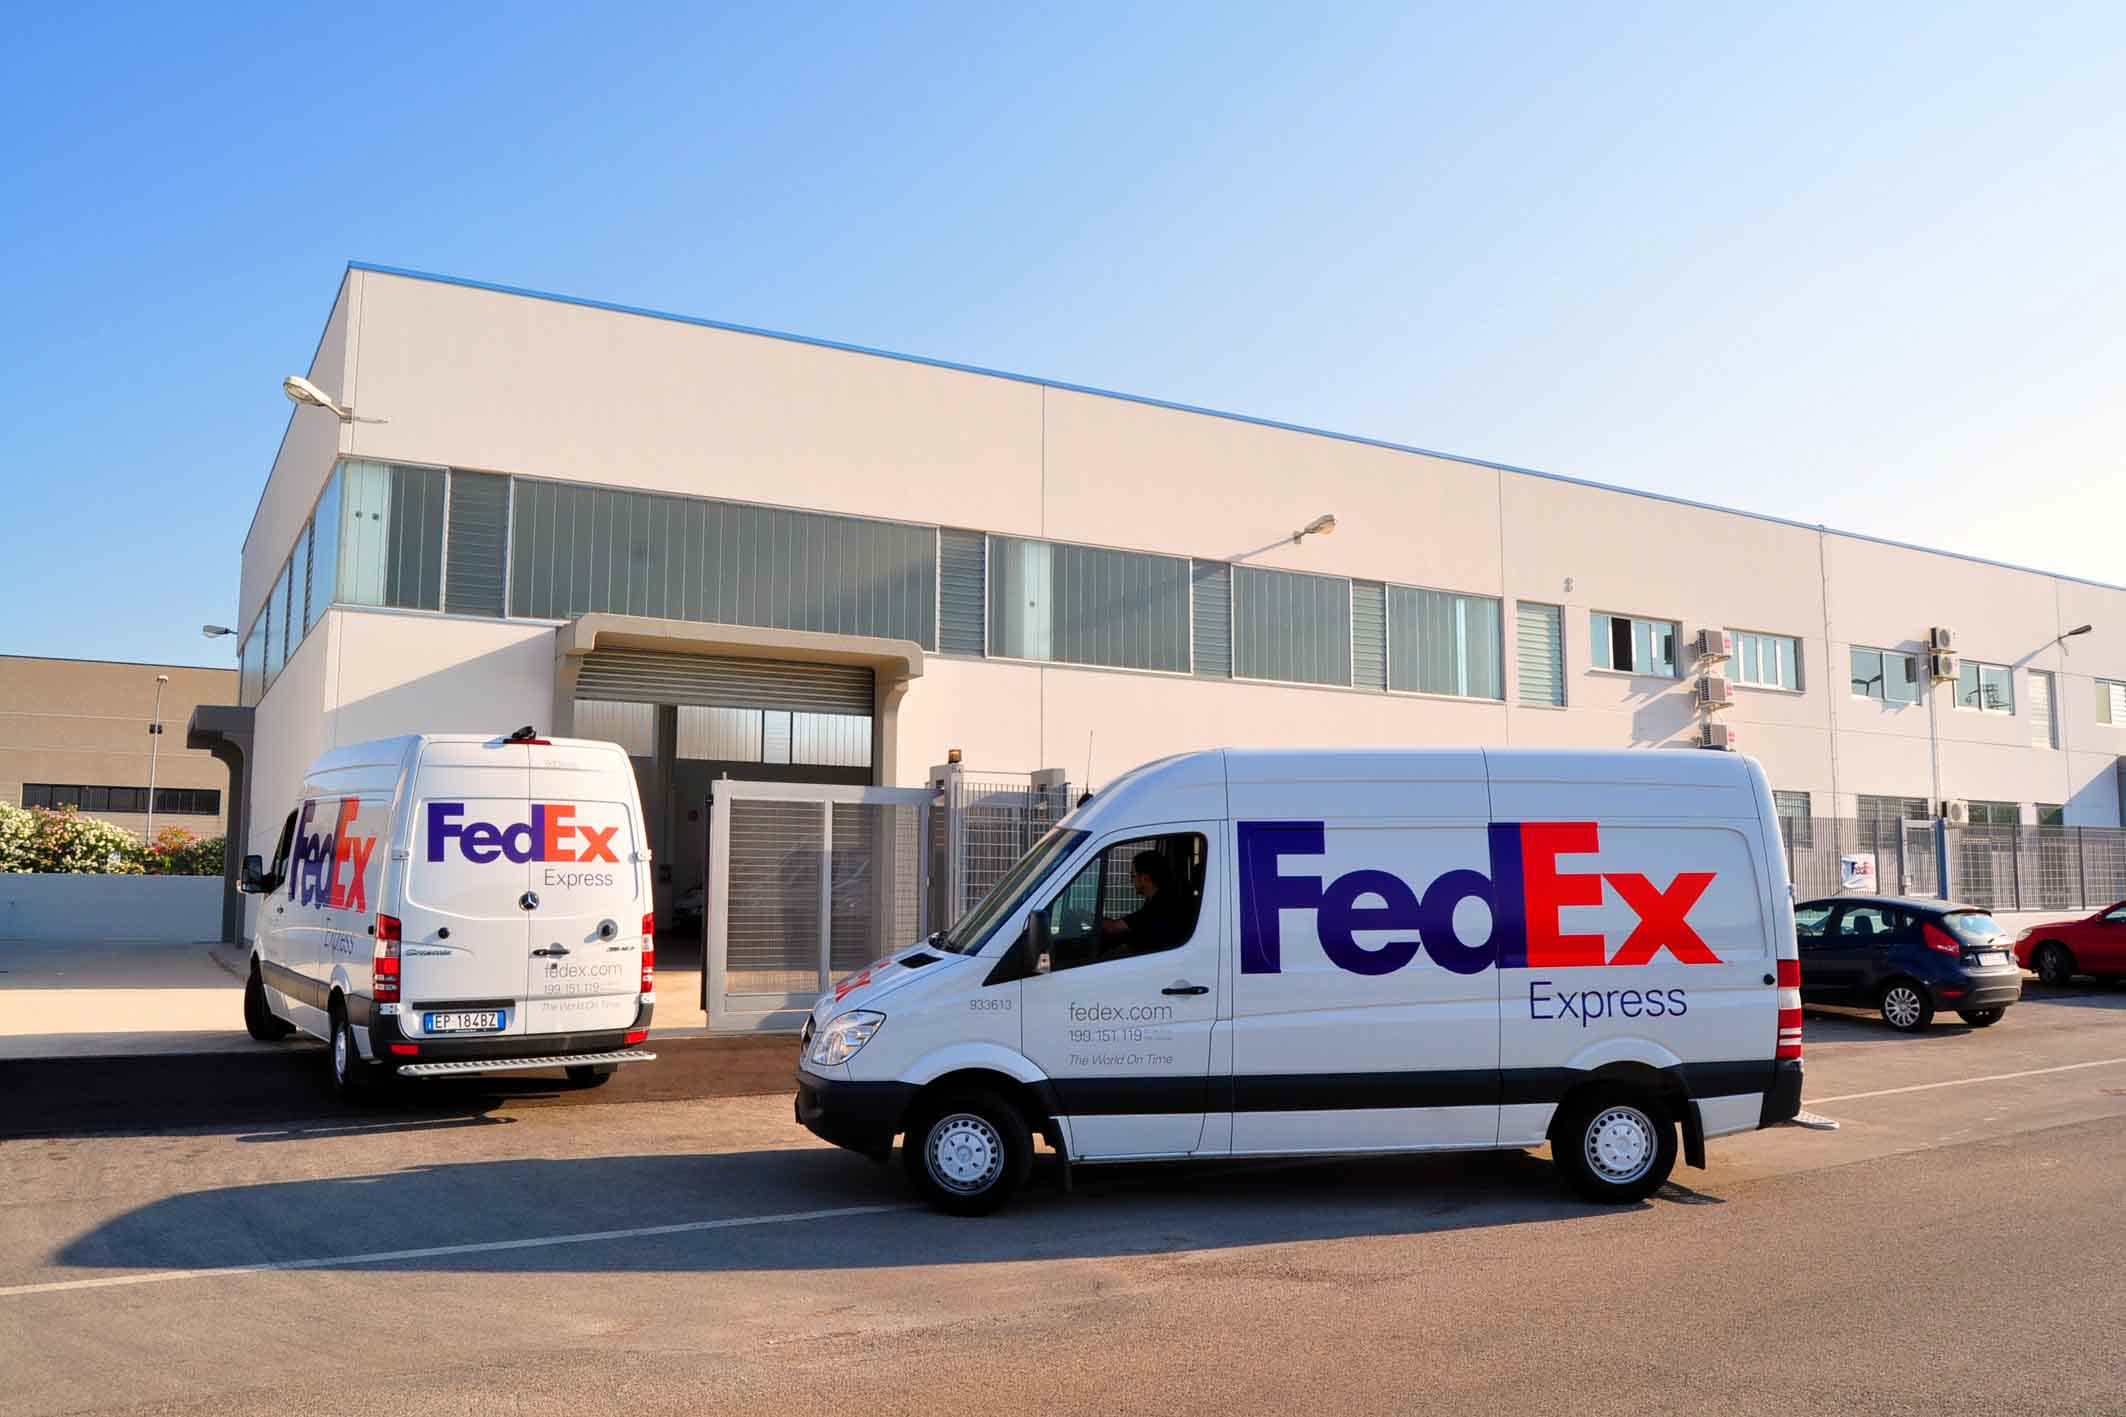 FedEx will invest  billion to become fully carbon-neutral by 2040